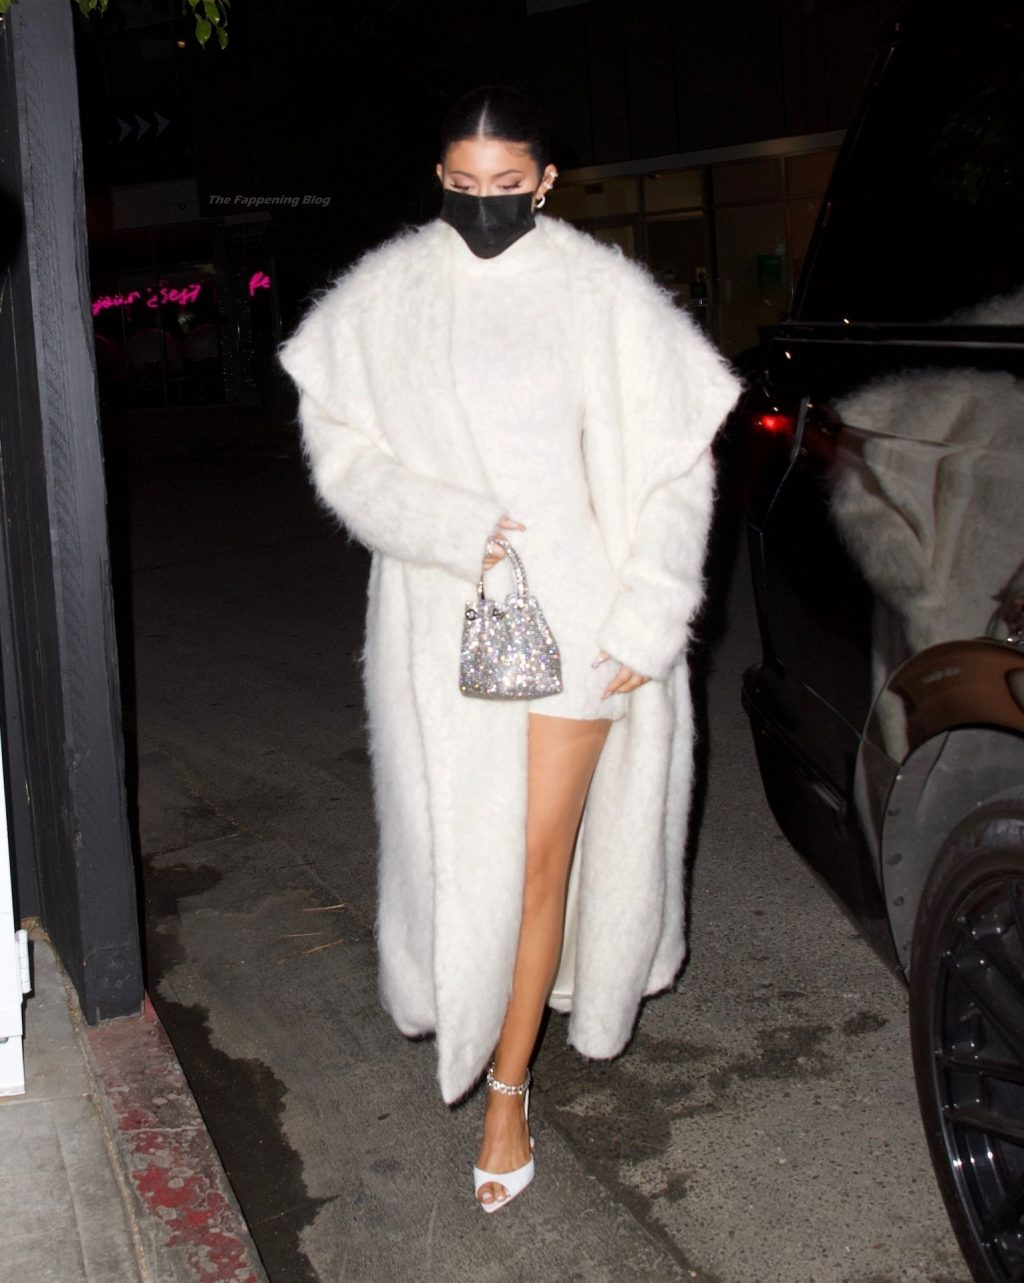 Kylie Jenner Shines in White for Dinner at The Nice Guy (16 Photos)